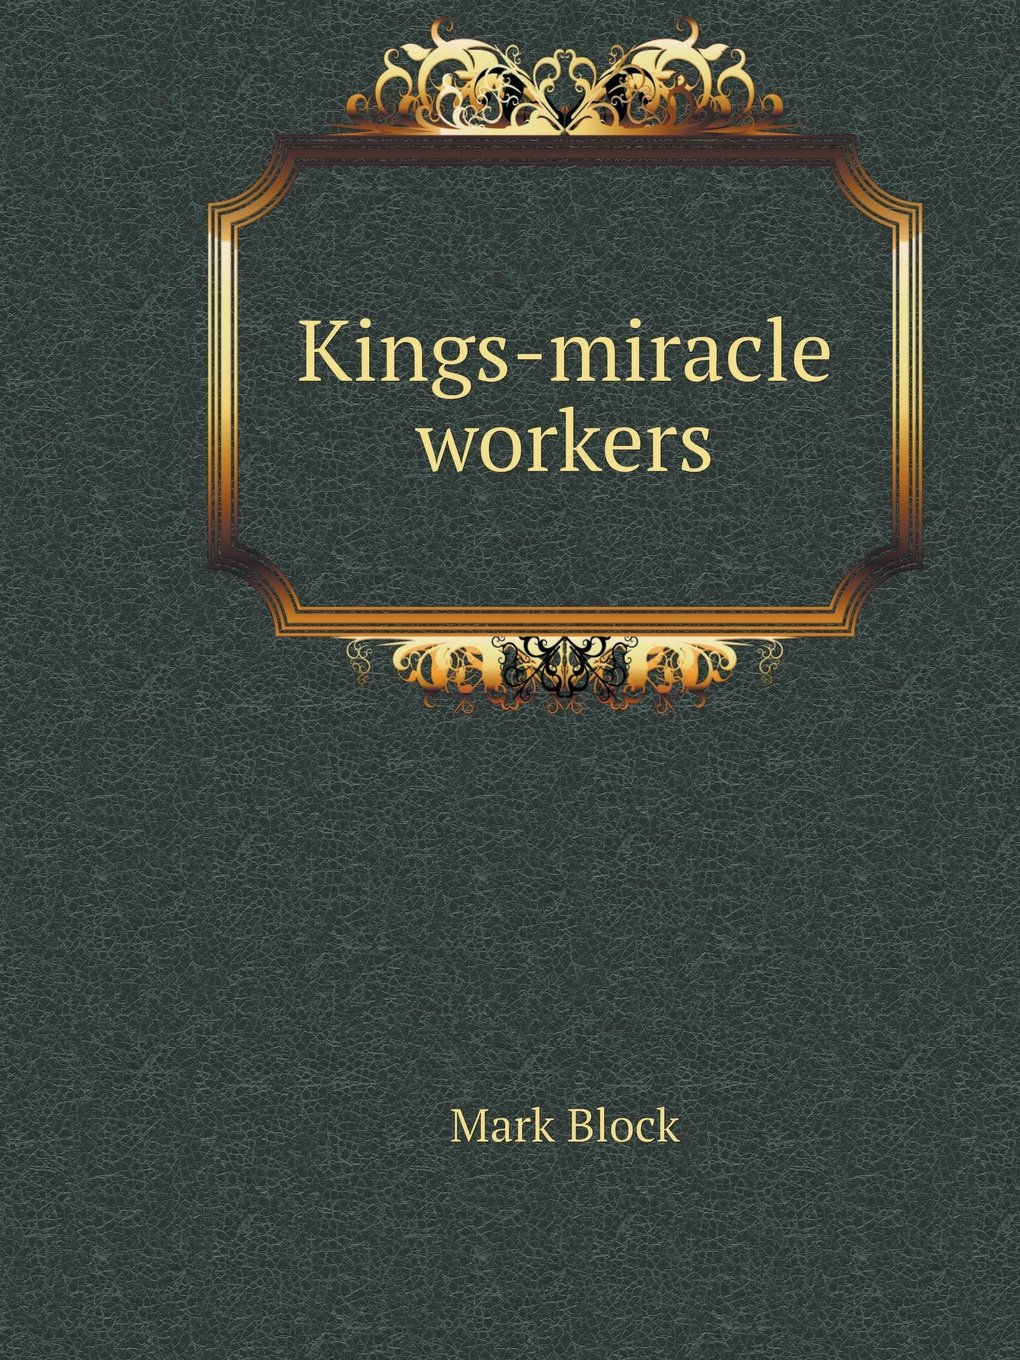 Kings-miracle workers (Russian Edition) PDF